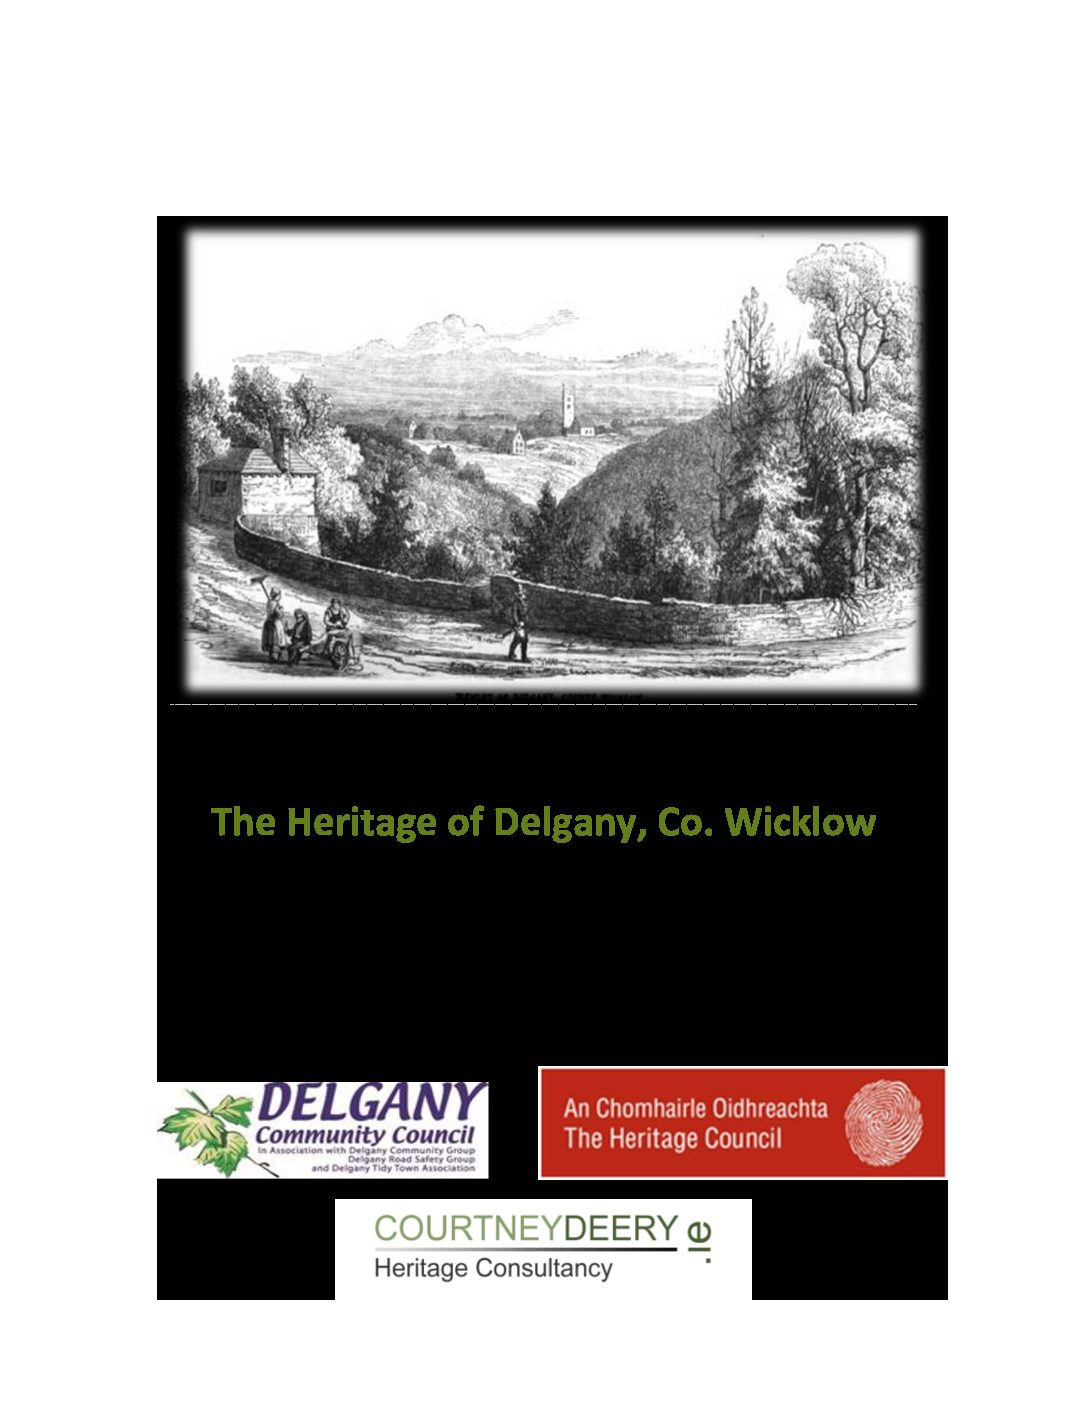 The Heritage of Delgany.